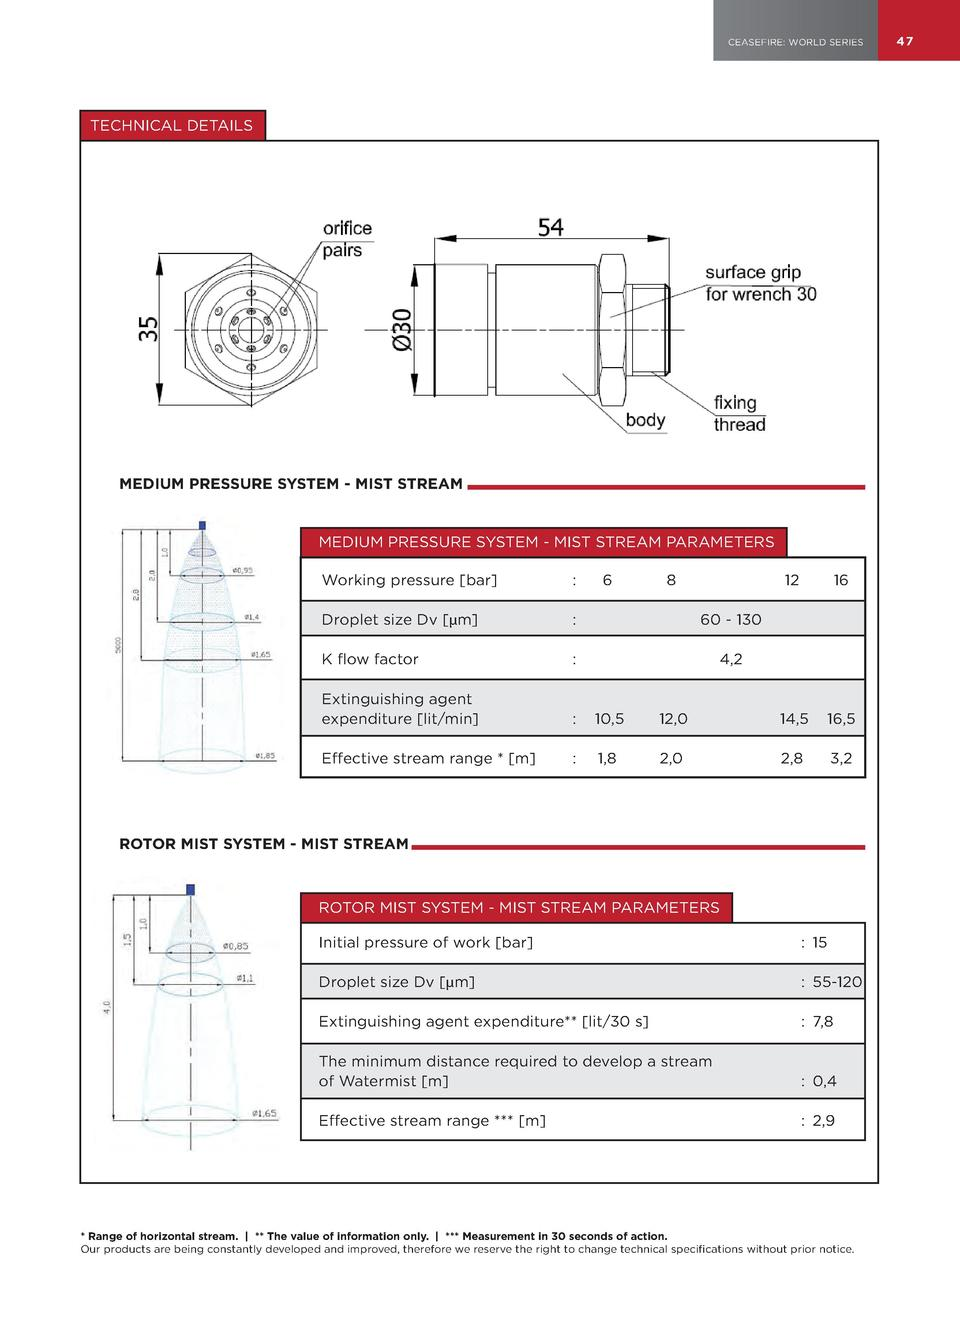 CEASEFIRE  WORLD SERIES  47  TECHNICAL DETAILS  MEDIUM PRESSURE SYSTEM - MIST STREAM  MEDIUM PRESSURE SYSTEM - MIST STREAM...